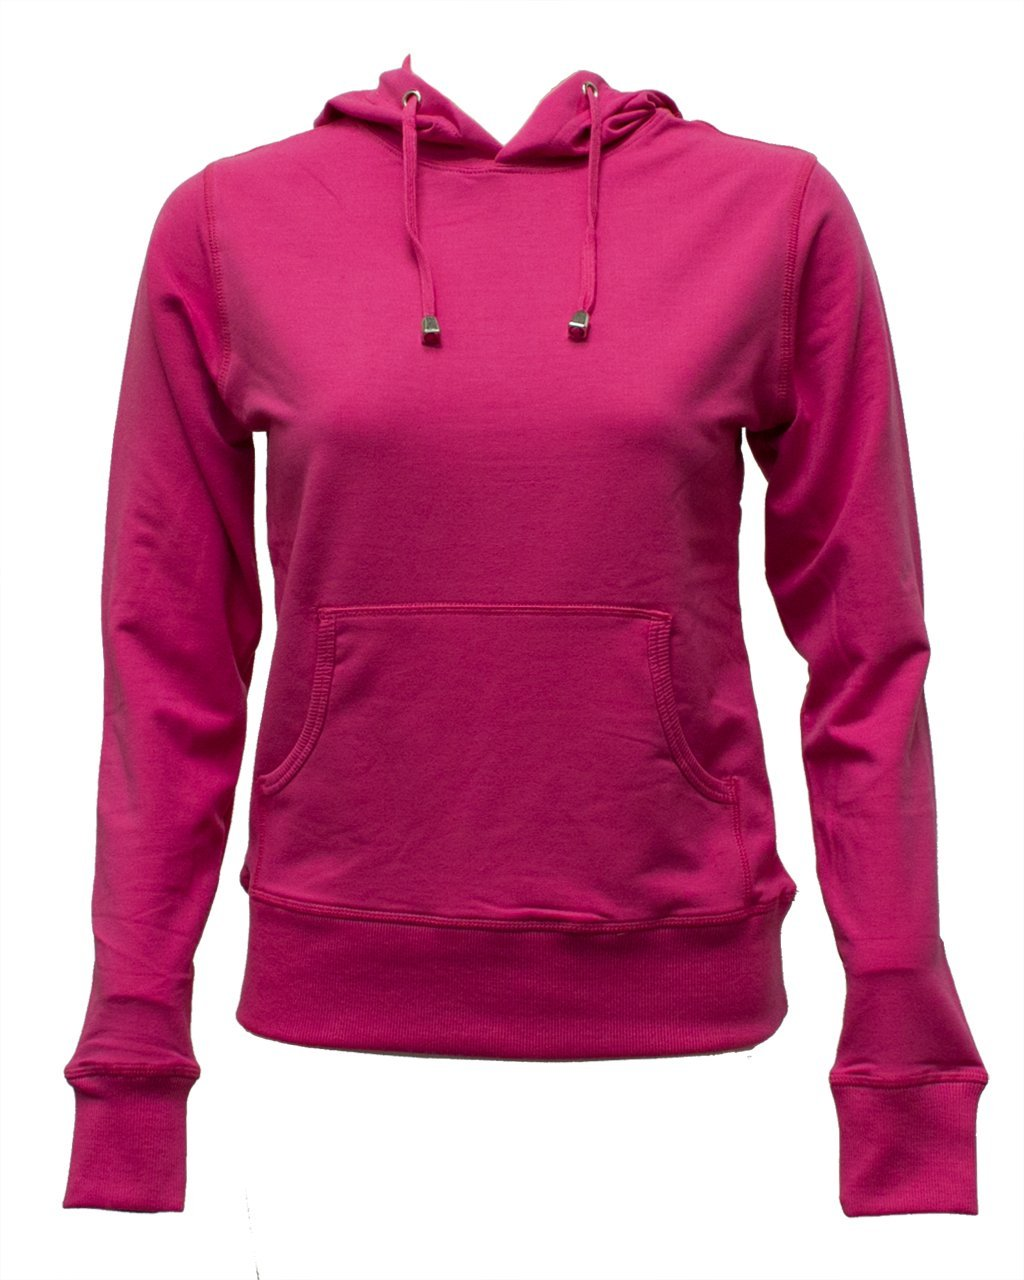 Pink Hoodies | PINK! Pink Shoes, Pink Accessories and Pink Stuff